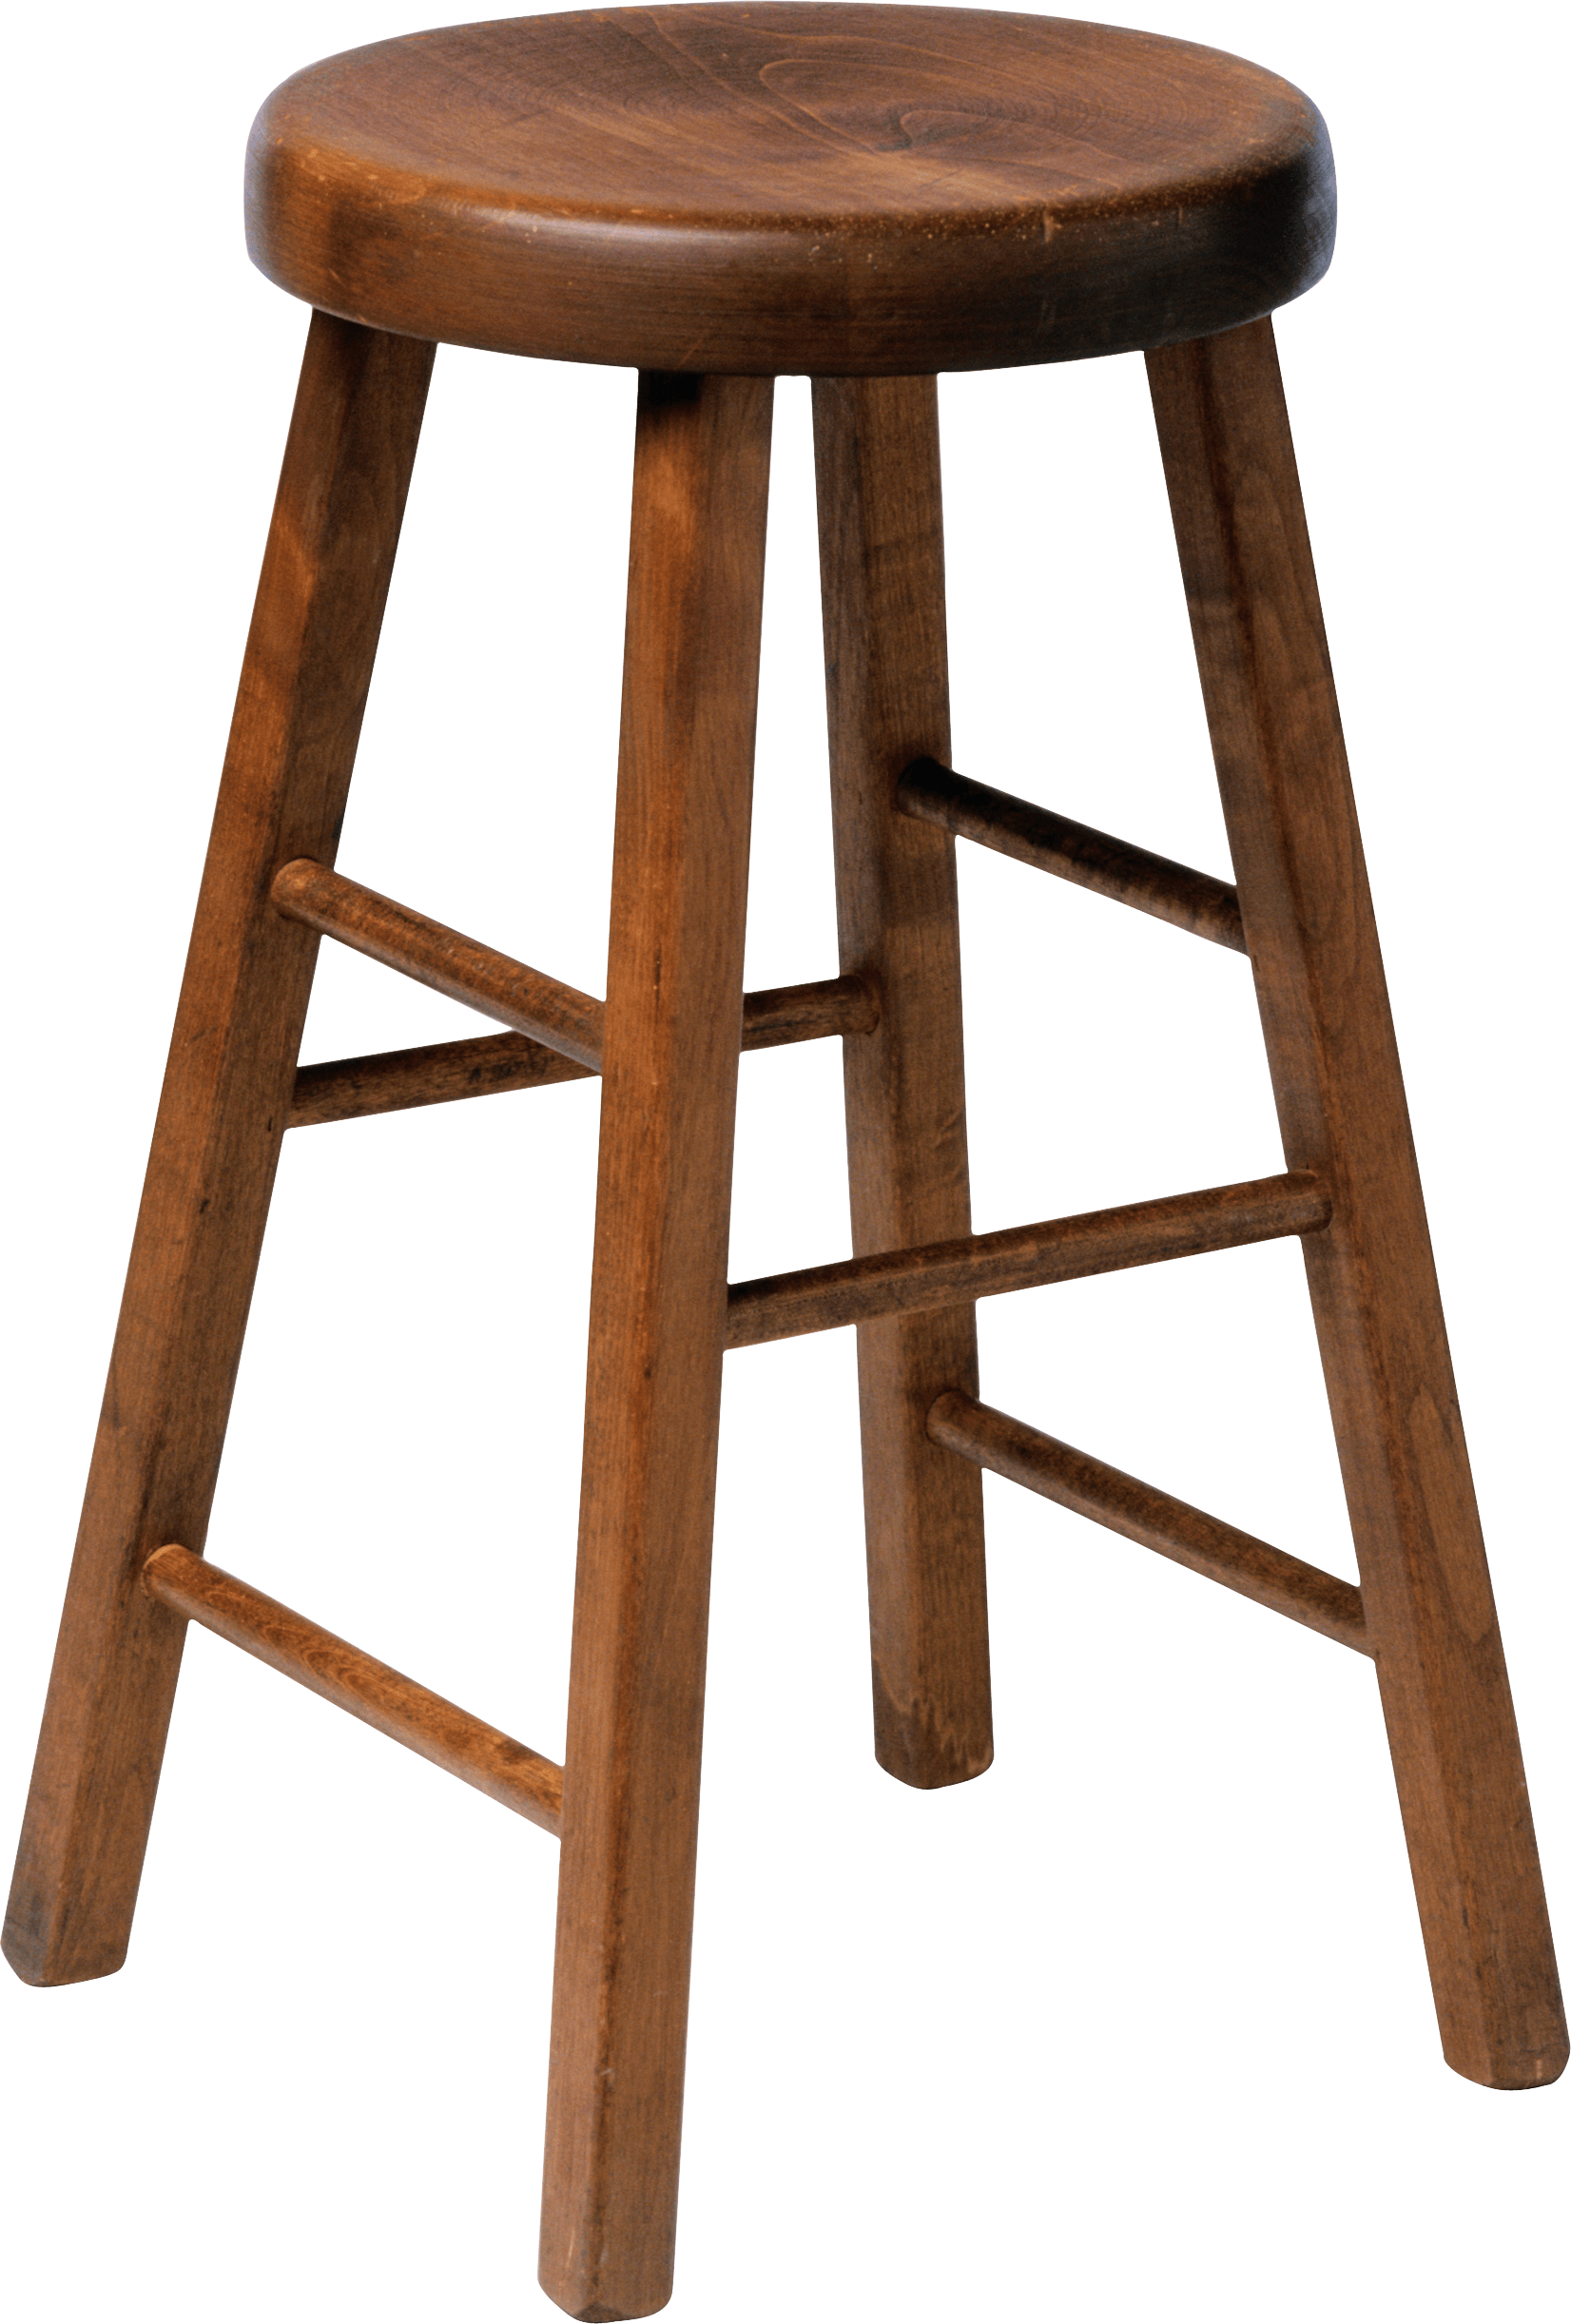 Wooden Stool Chair transparent PNG.